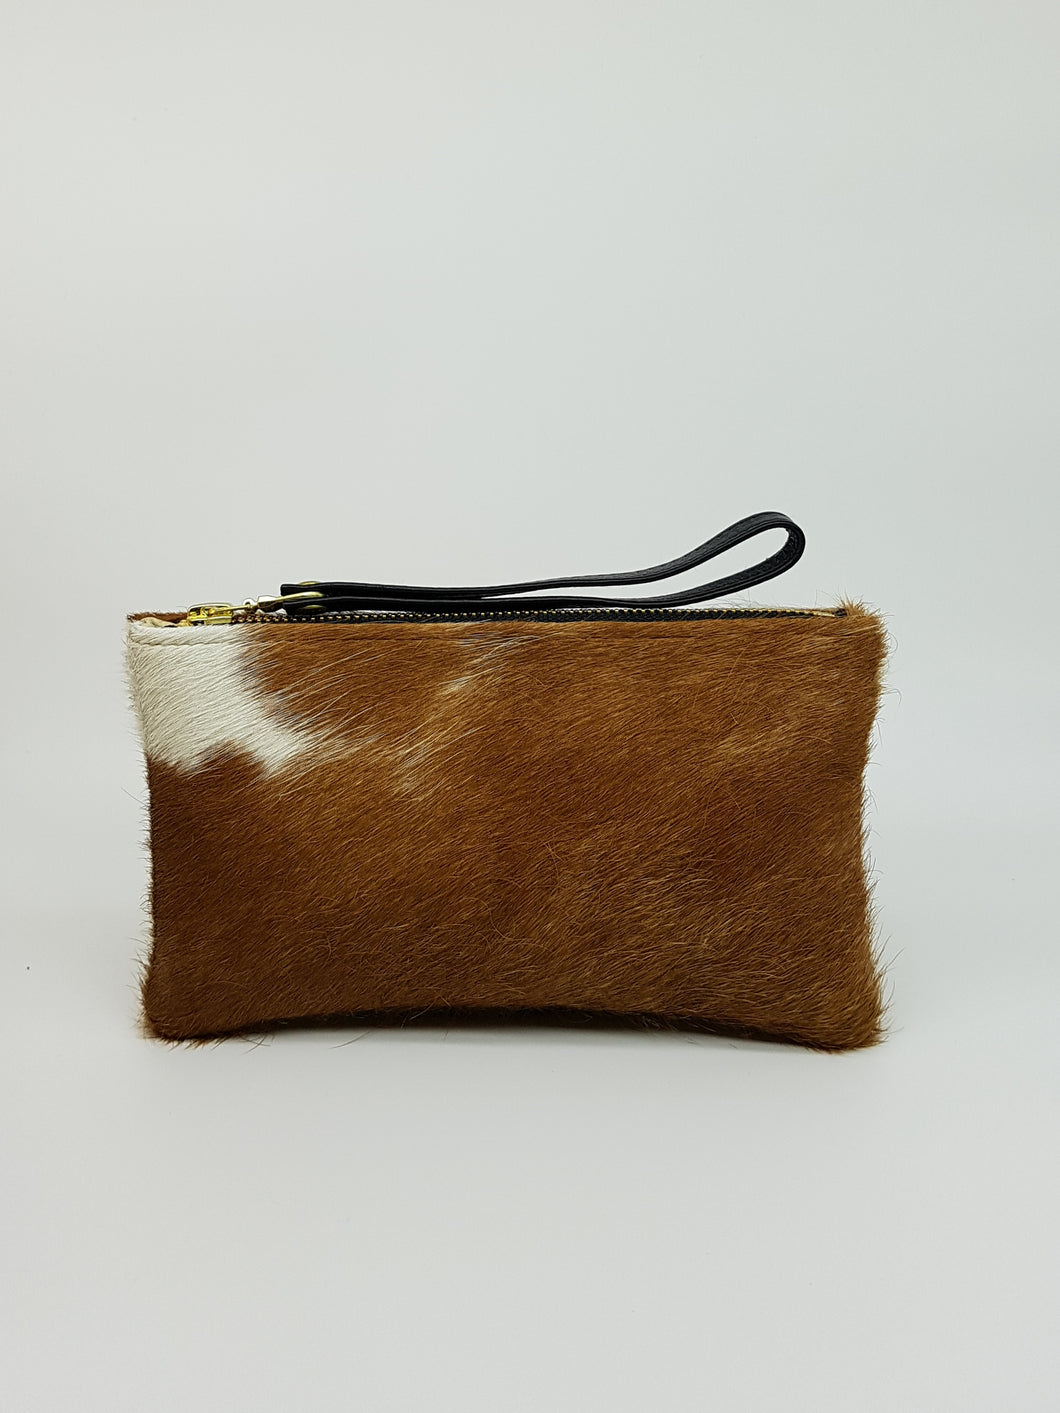 Crossbody leather handbags, Leather clutch handbags for sale in Australia